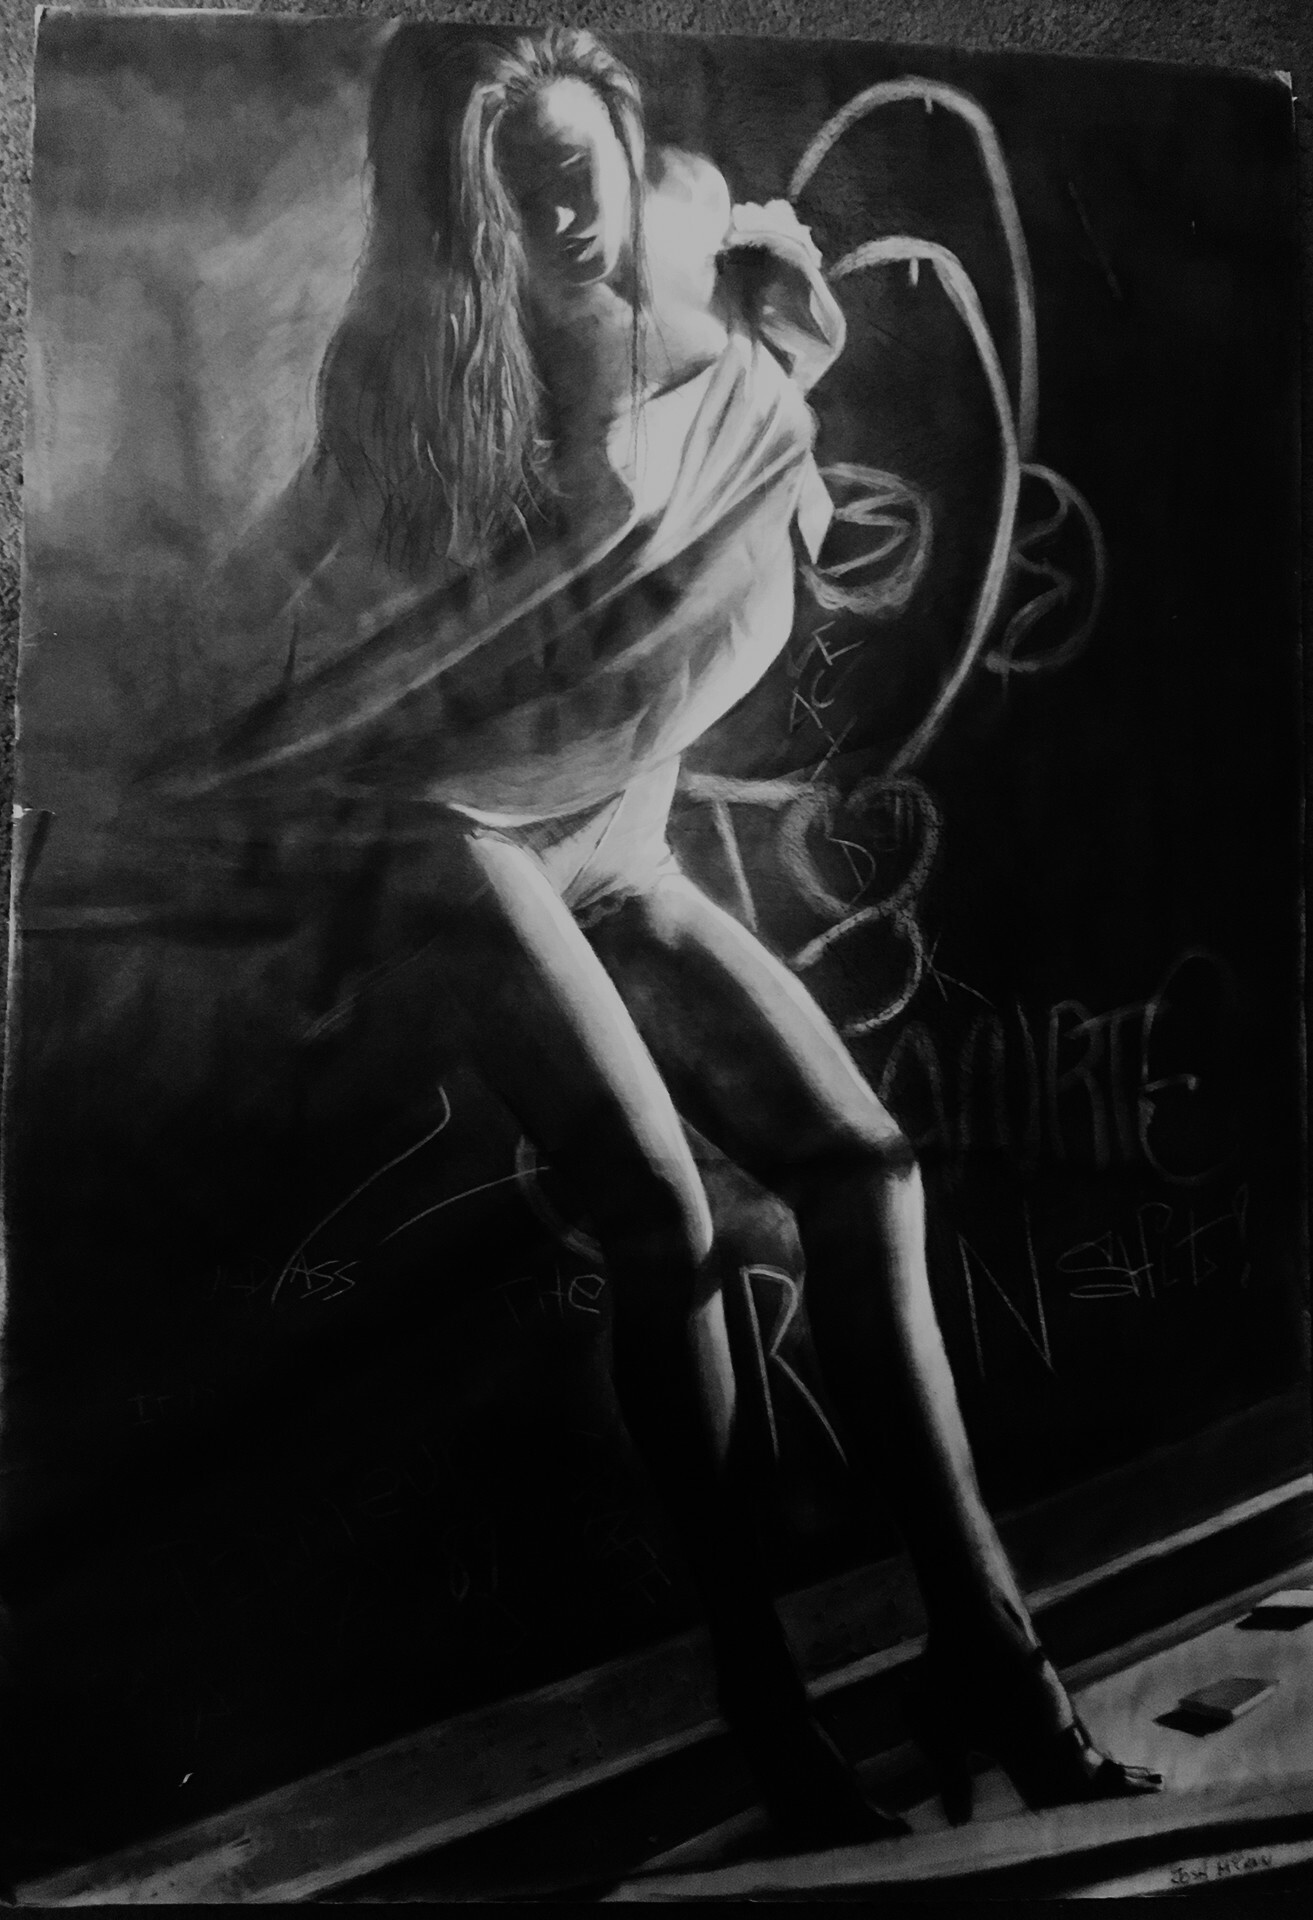 Original Charcoal done in 2004